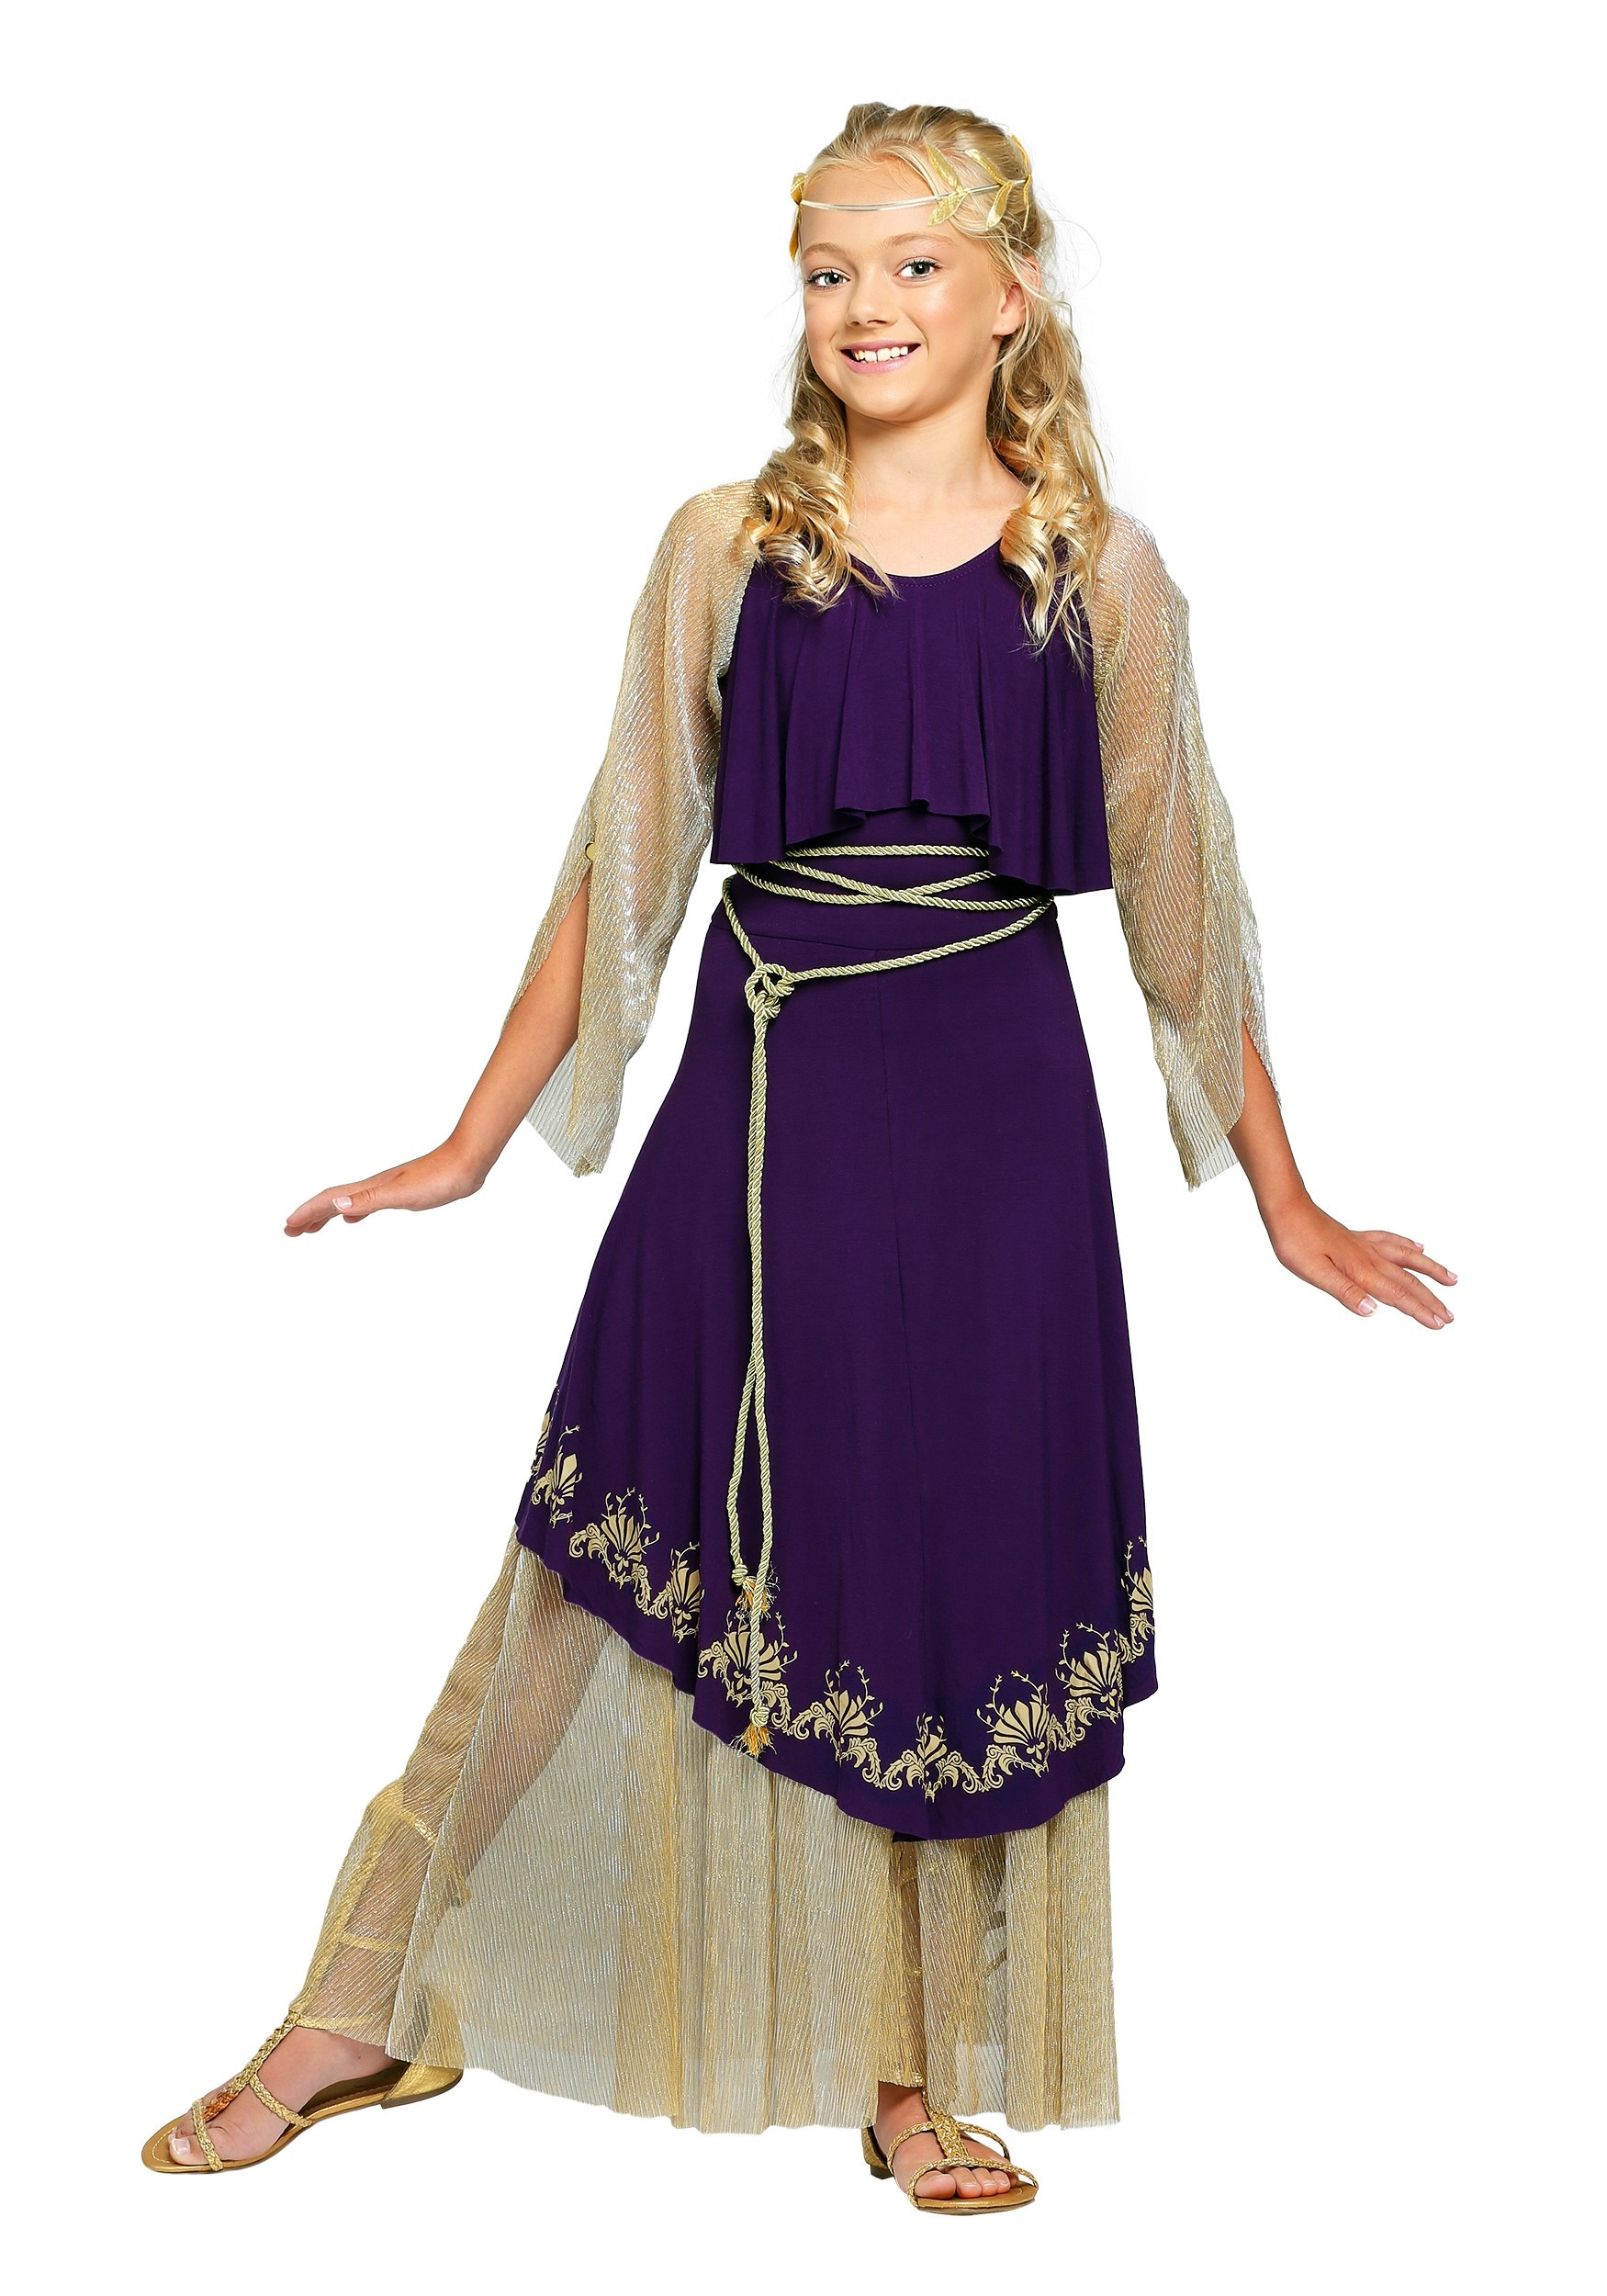 Aphrodite goddess costume for girls girls aphrodite goddess costume solutioingenieria Gallery